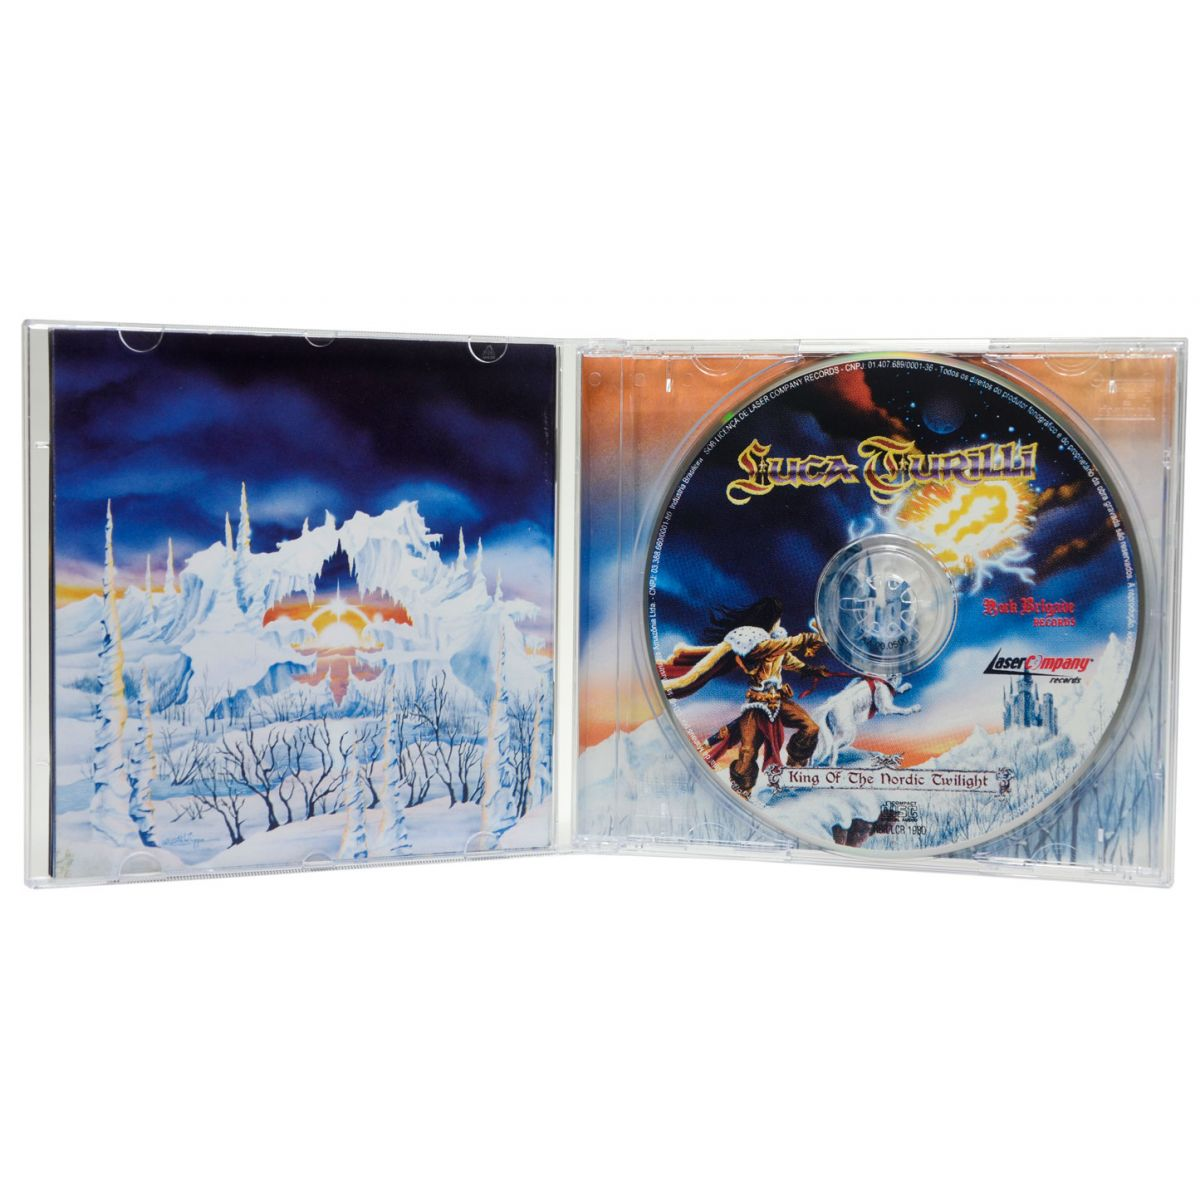 CD Luca Turilli - King Of The Nordic Twilight - Lacrado